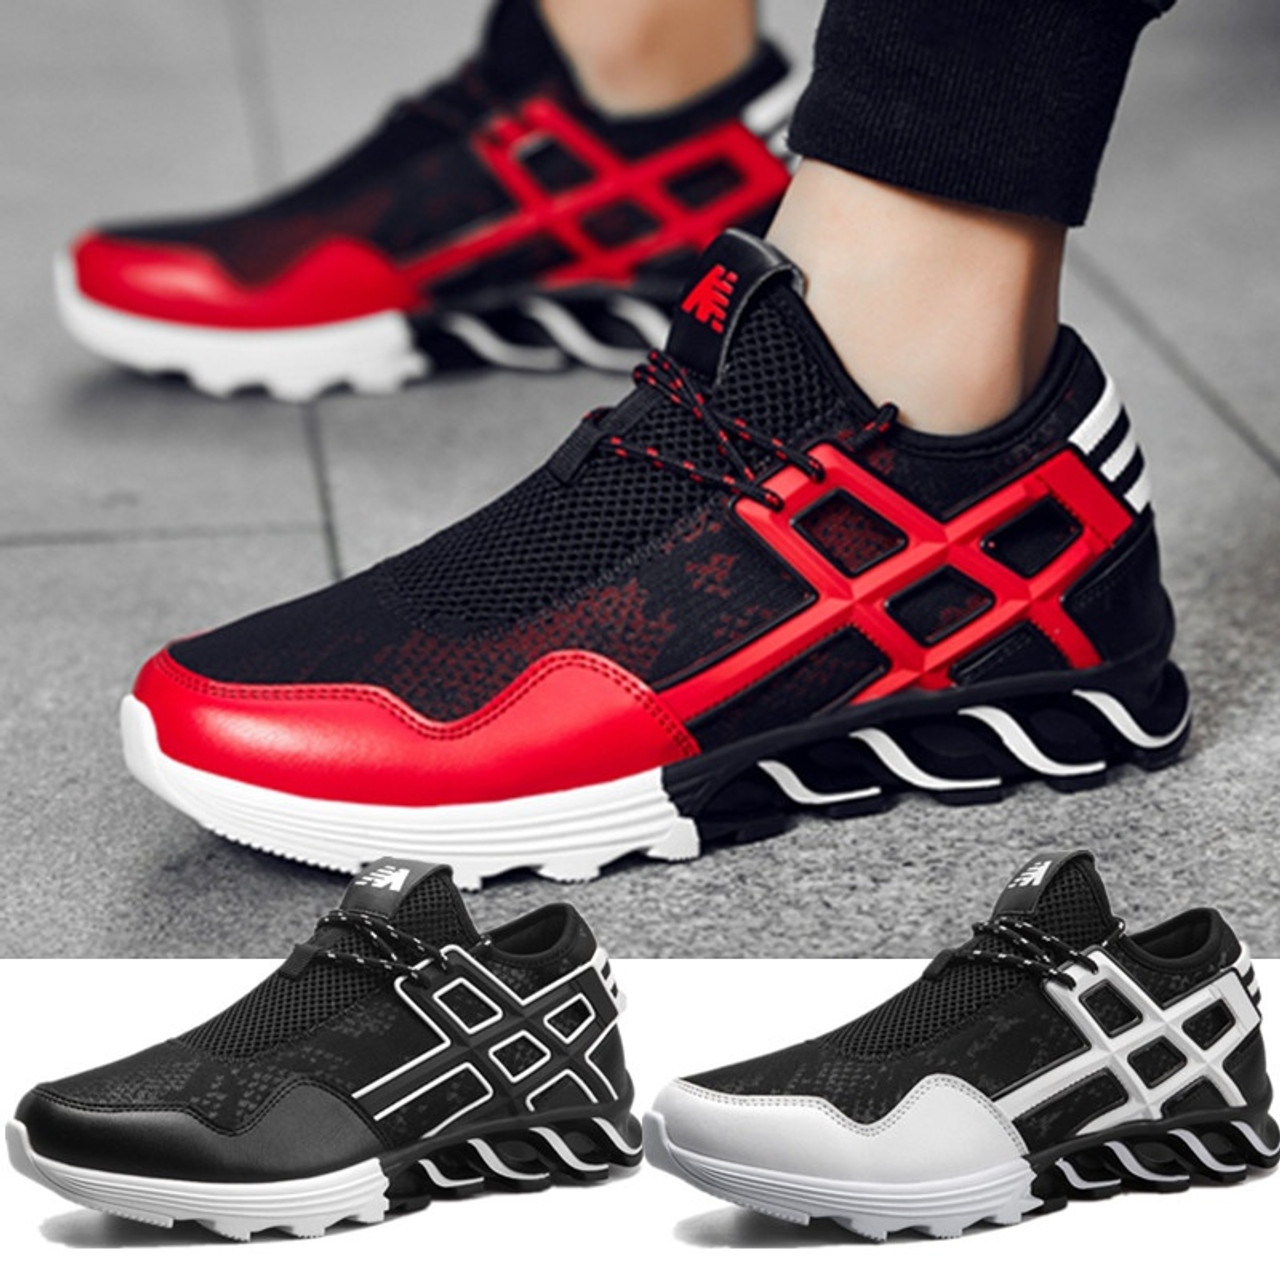 3bd2bec4e32 2018 spring new men's wild sports casual breathable mesh shoes students  Korean running shoes men's shoes tide shoes